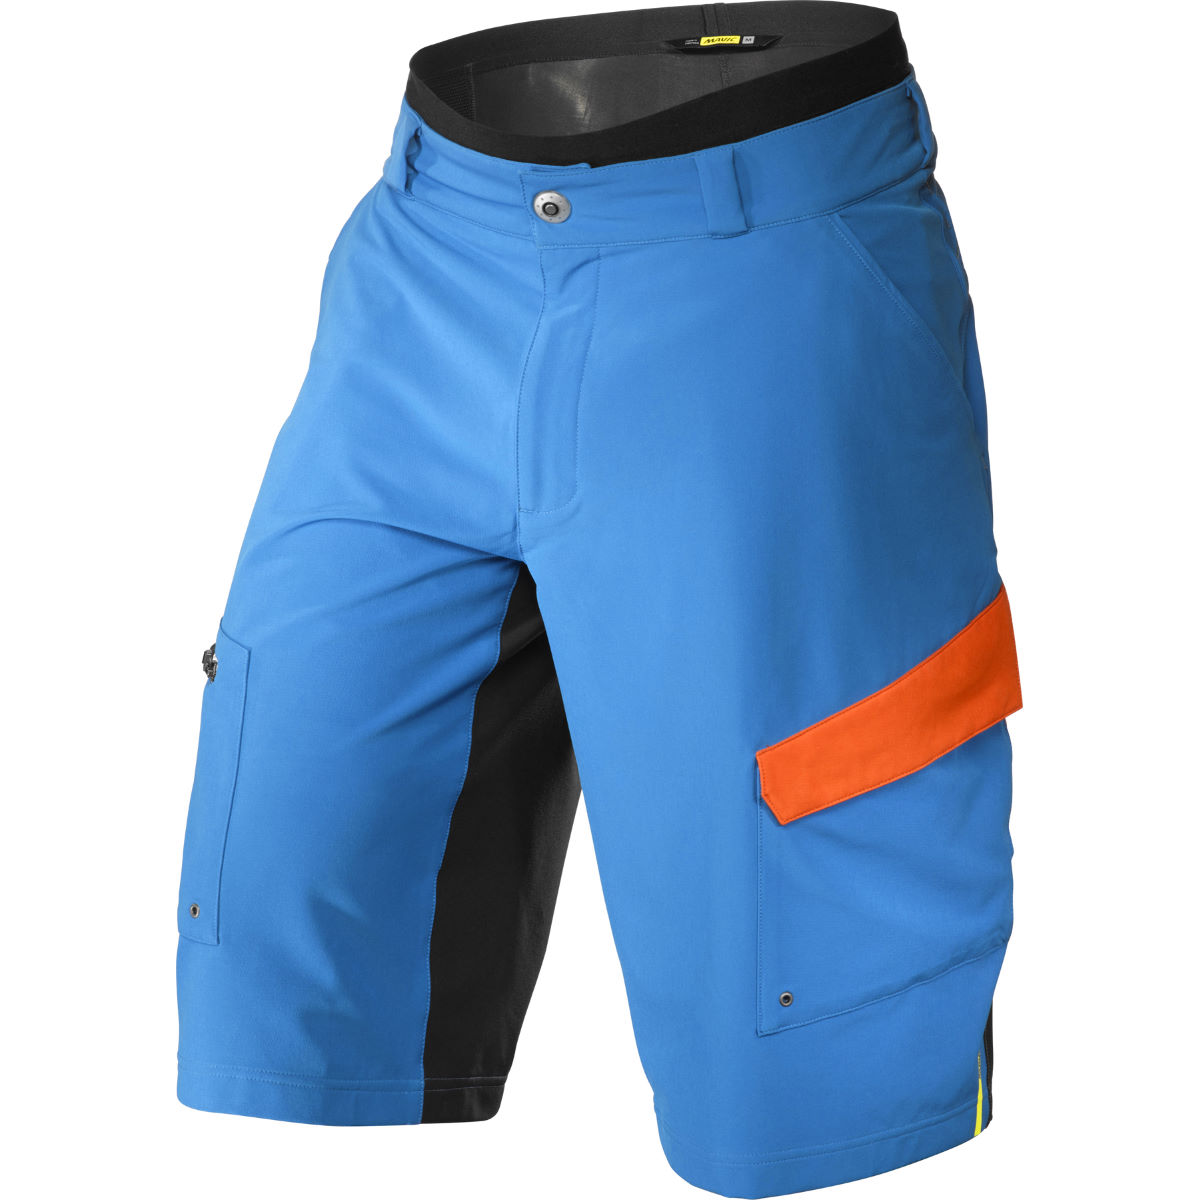 Ensemble short Mavic Crossmax Pro - XXL Montana/Orange Shorts VTT